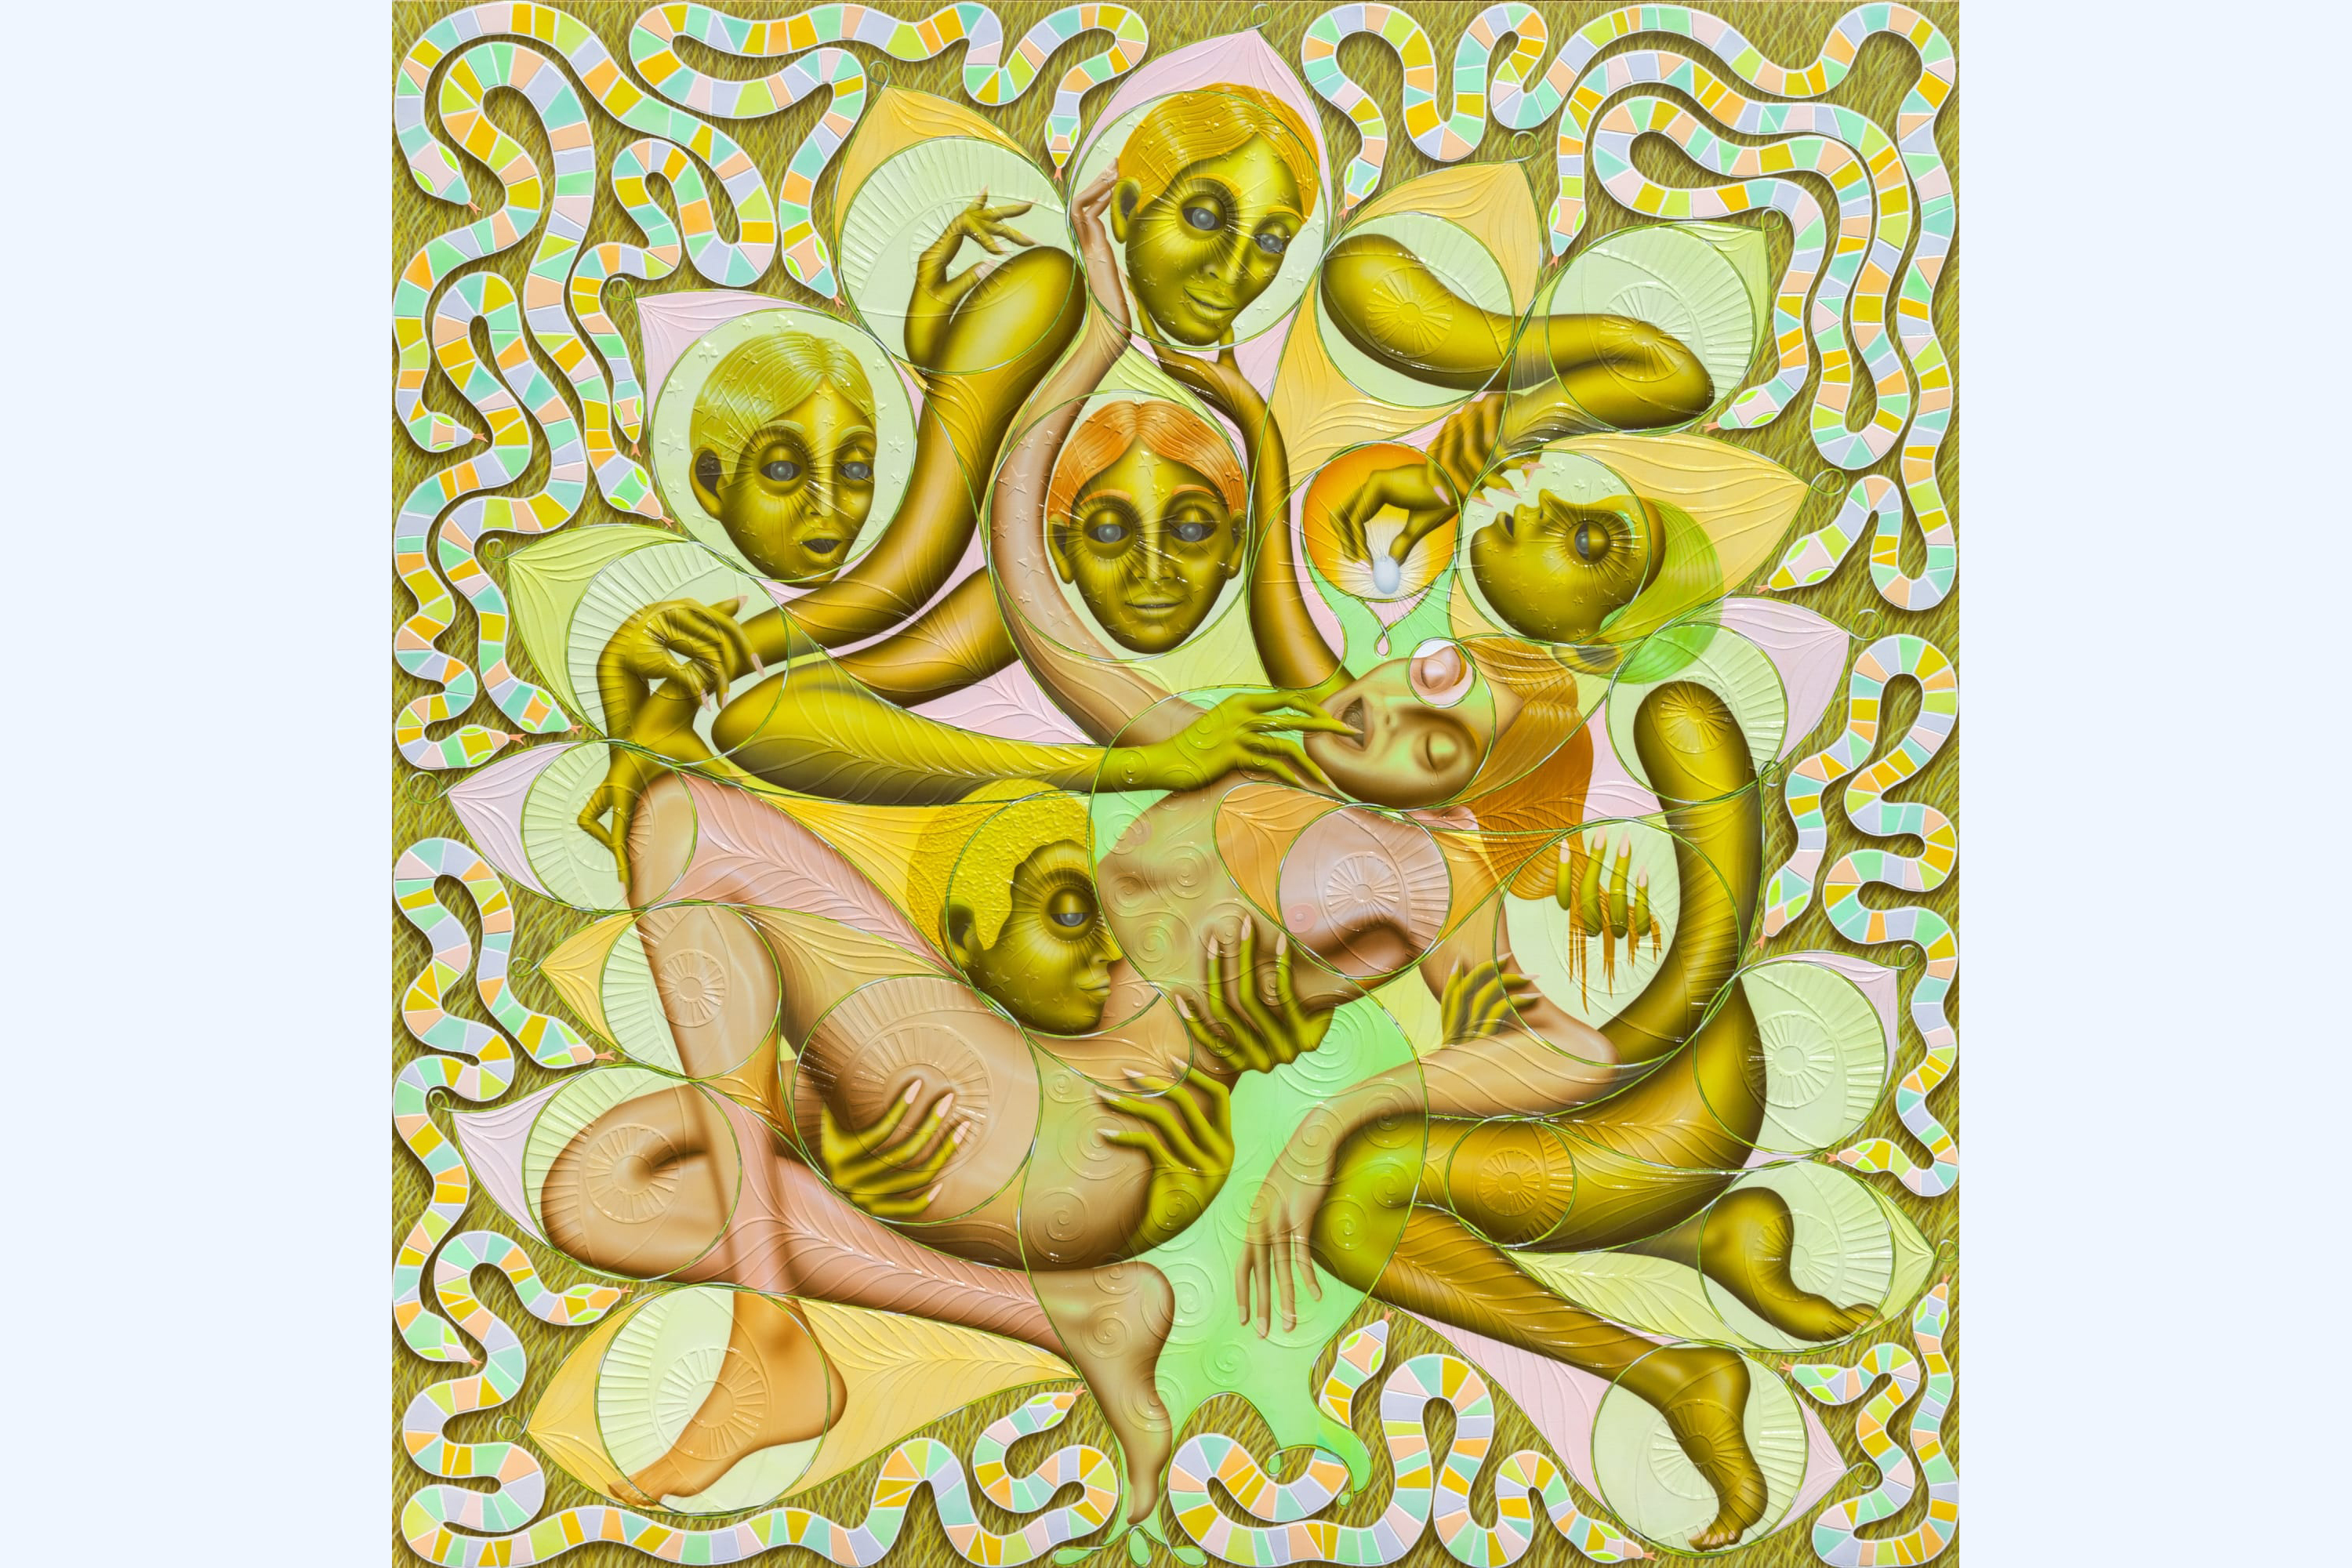 A psychedelic painting depicting a tangle of female-looking figures. The central figure has pink skin, and is being carried by the others in a position referencing Michaelangelo's Pietà. The other figures have mossy green skin, and one is putting a finger in the pink figure's mouth. ​Feather-shaped embellishments mimicking the wings of a peacock are layered over the figures. They're surrounded by brightly-colored, striped snakes.